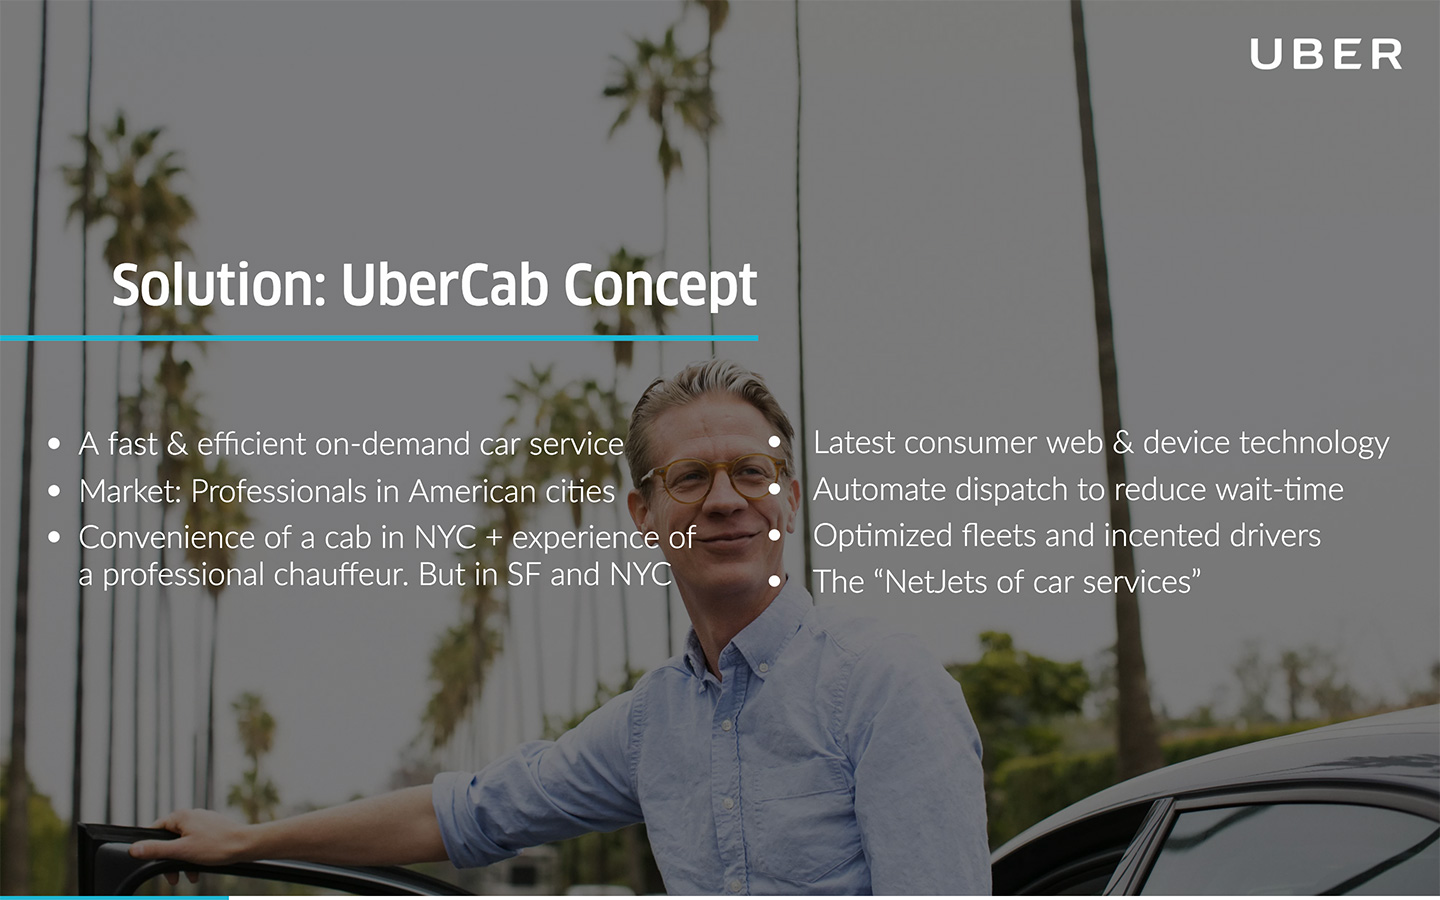 Uber-Pitch-Deck04.jpg